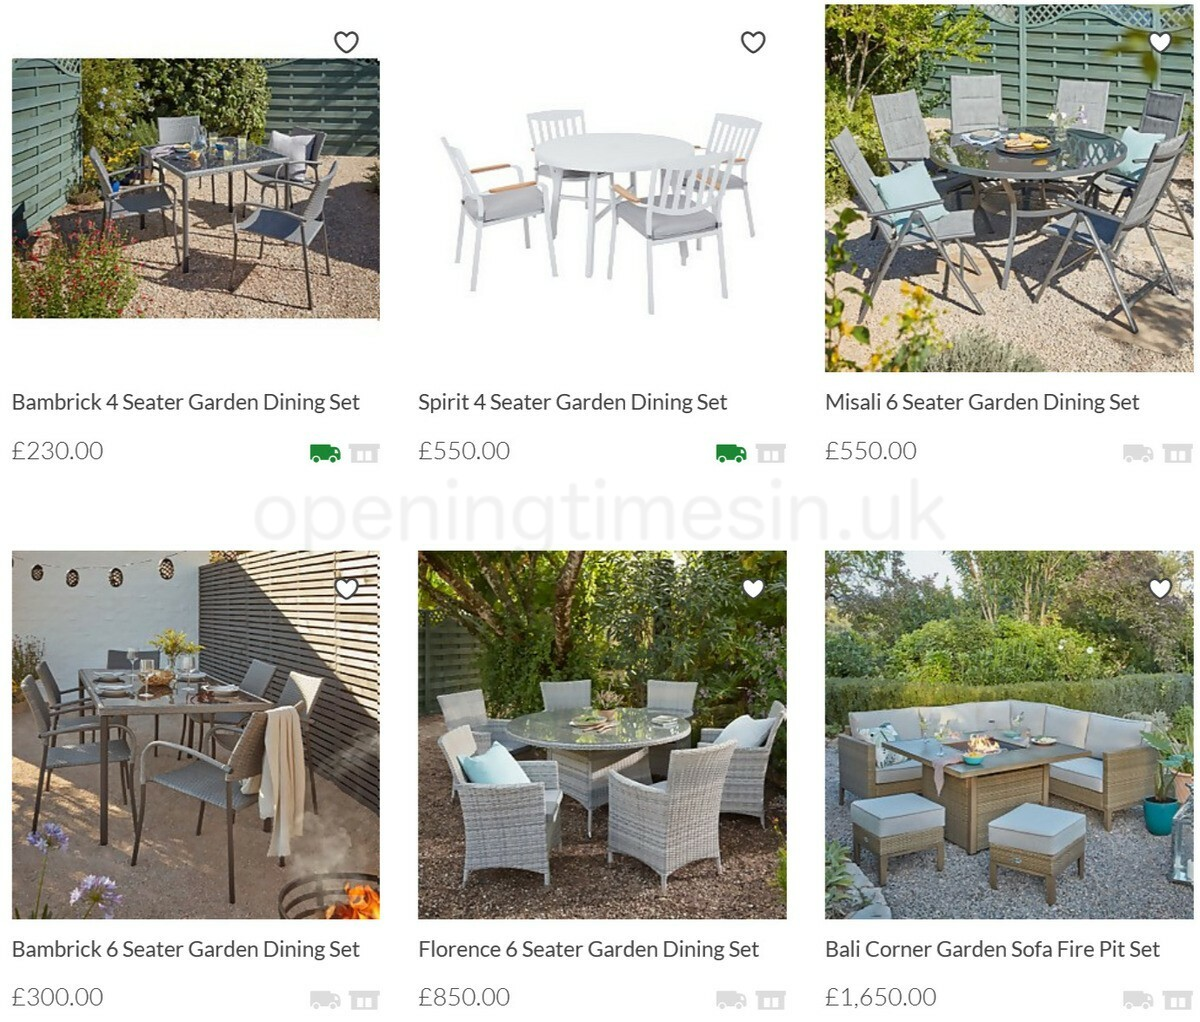 Homebase Offers from March 27